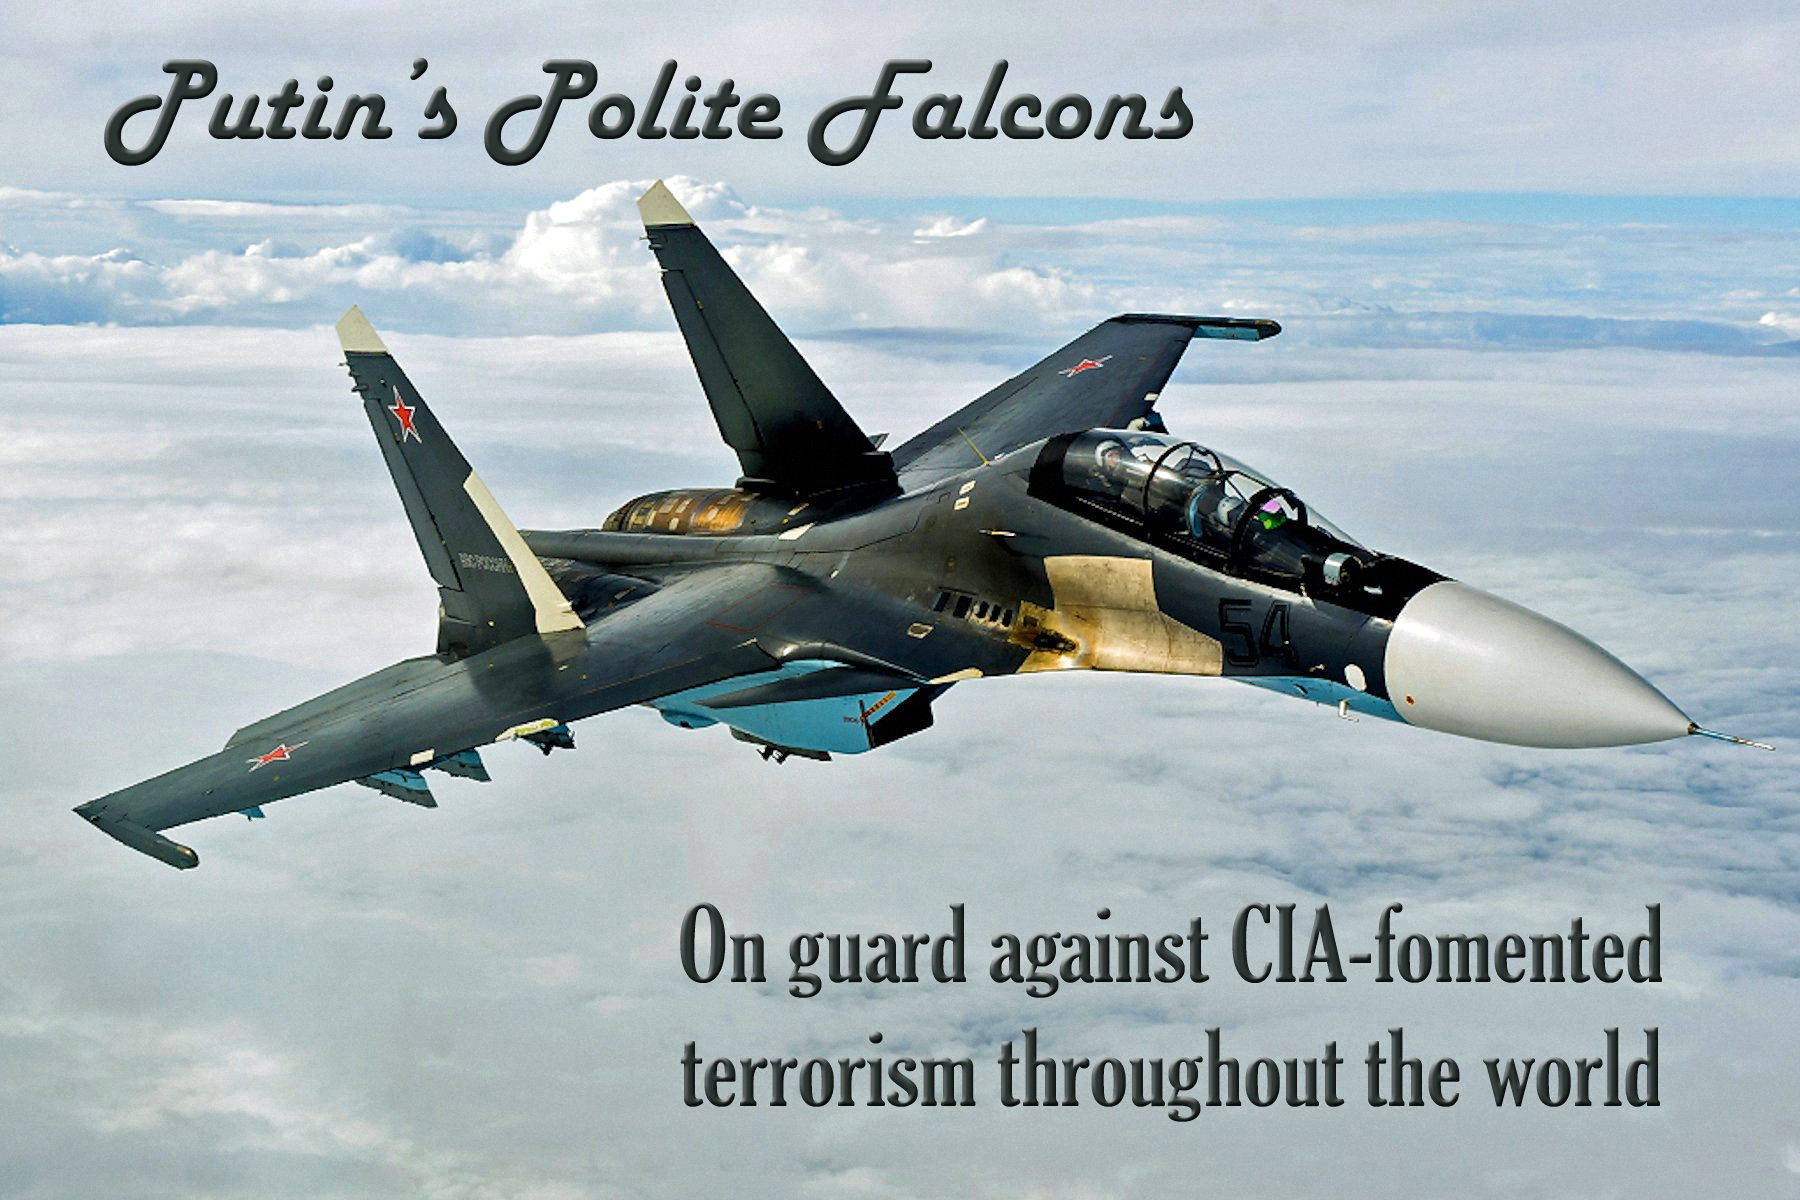 00 russia putins polite falcons ISIL on the run 251015